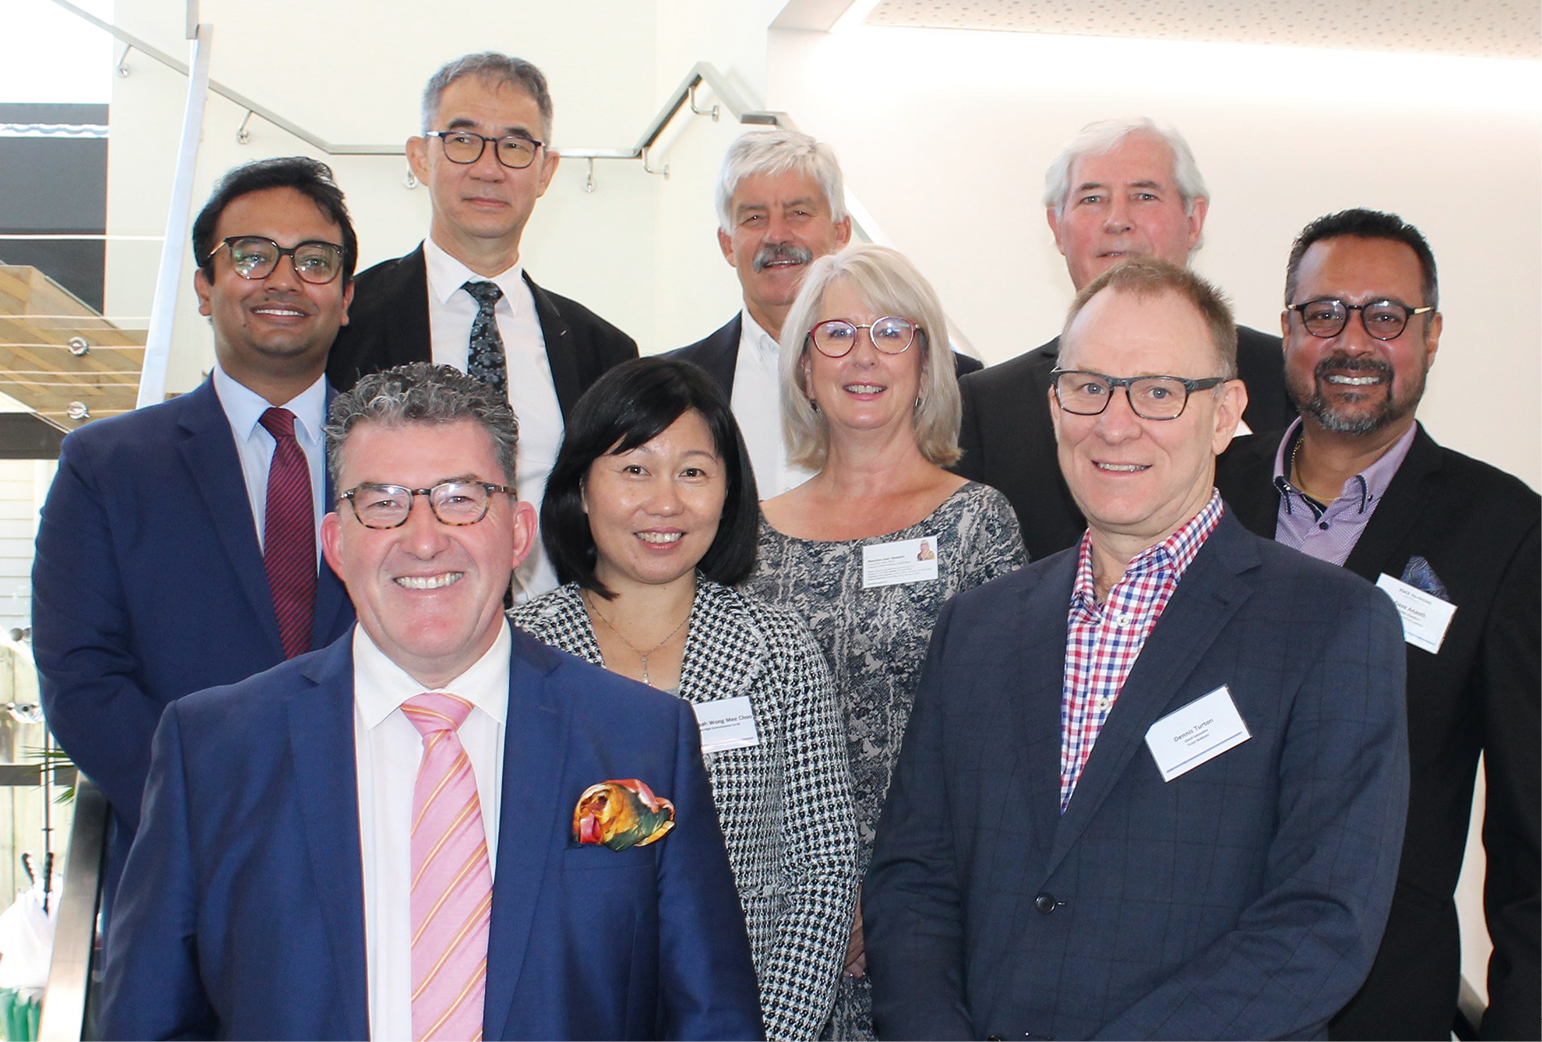 At the launch, from left, Gaurav Sharma, William Durning (front), Alan Chew (back), High Commissioner Nur Izzah Wong Mee Choo, Don Good, Maxine van Oosten, Patrick Wilson (back), Dennis Turton (front) and Dave Ananth.